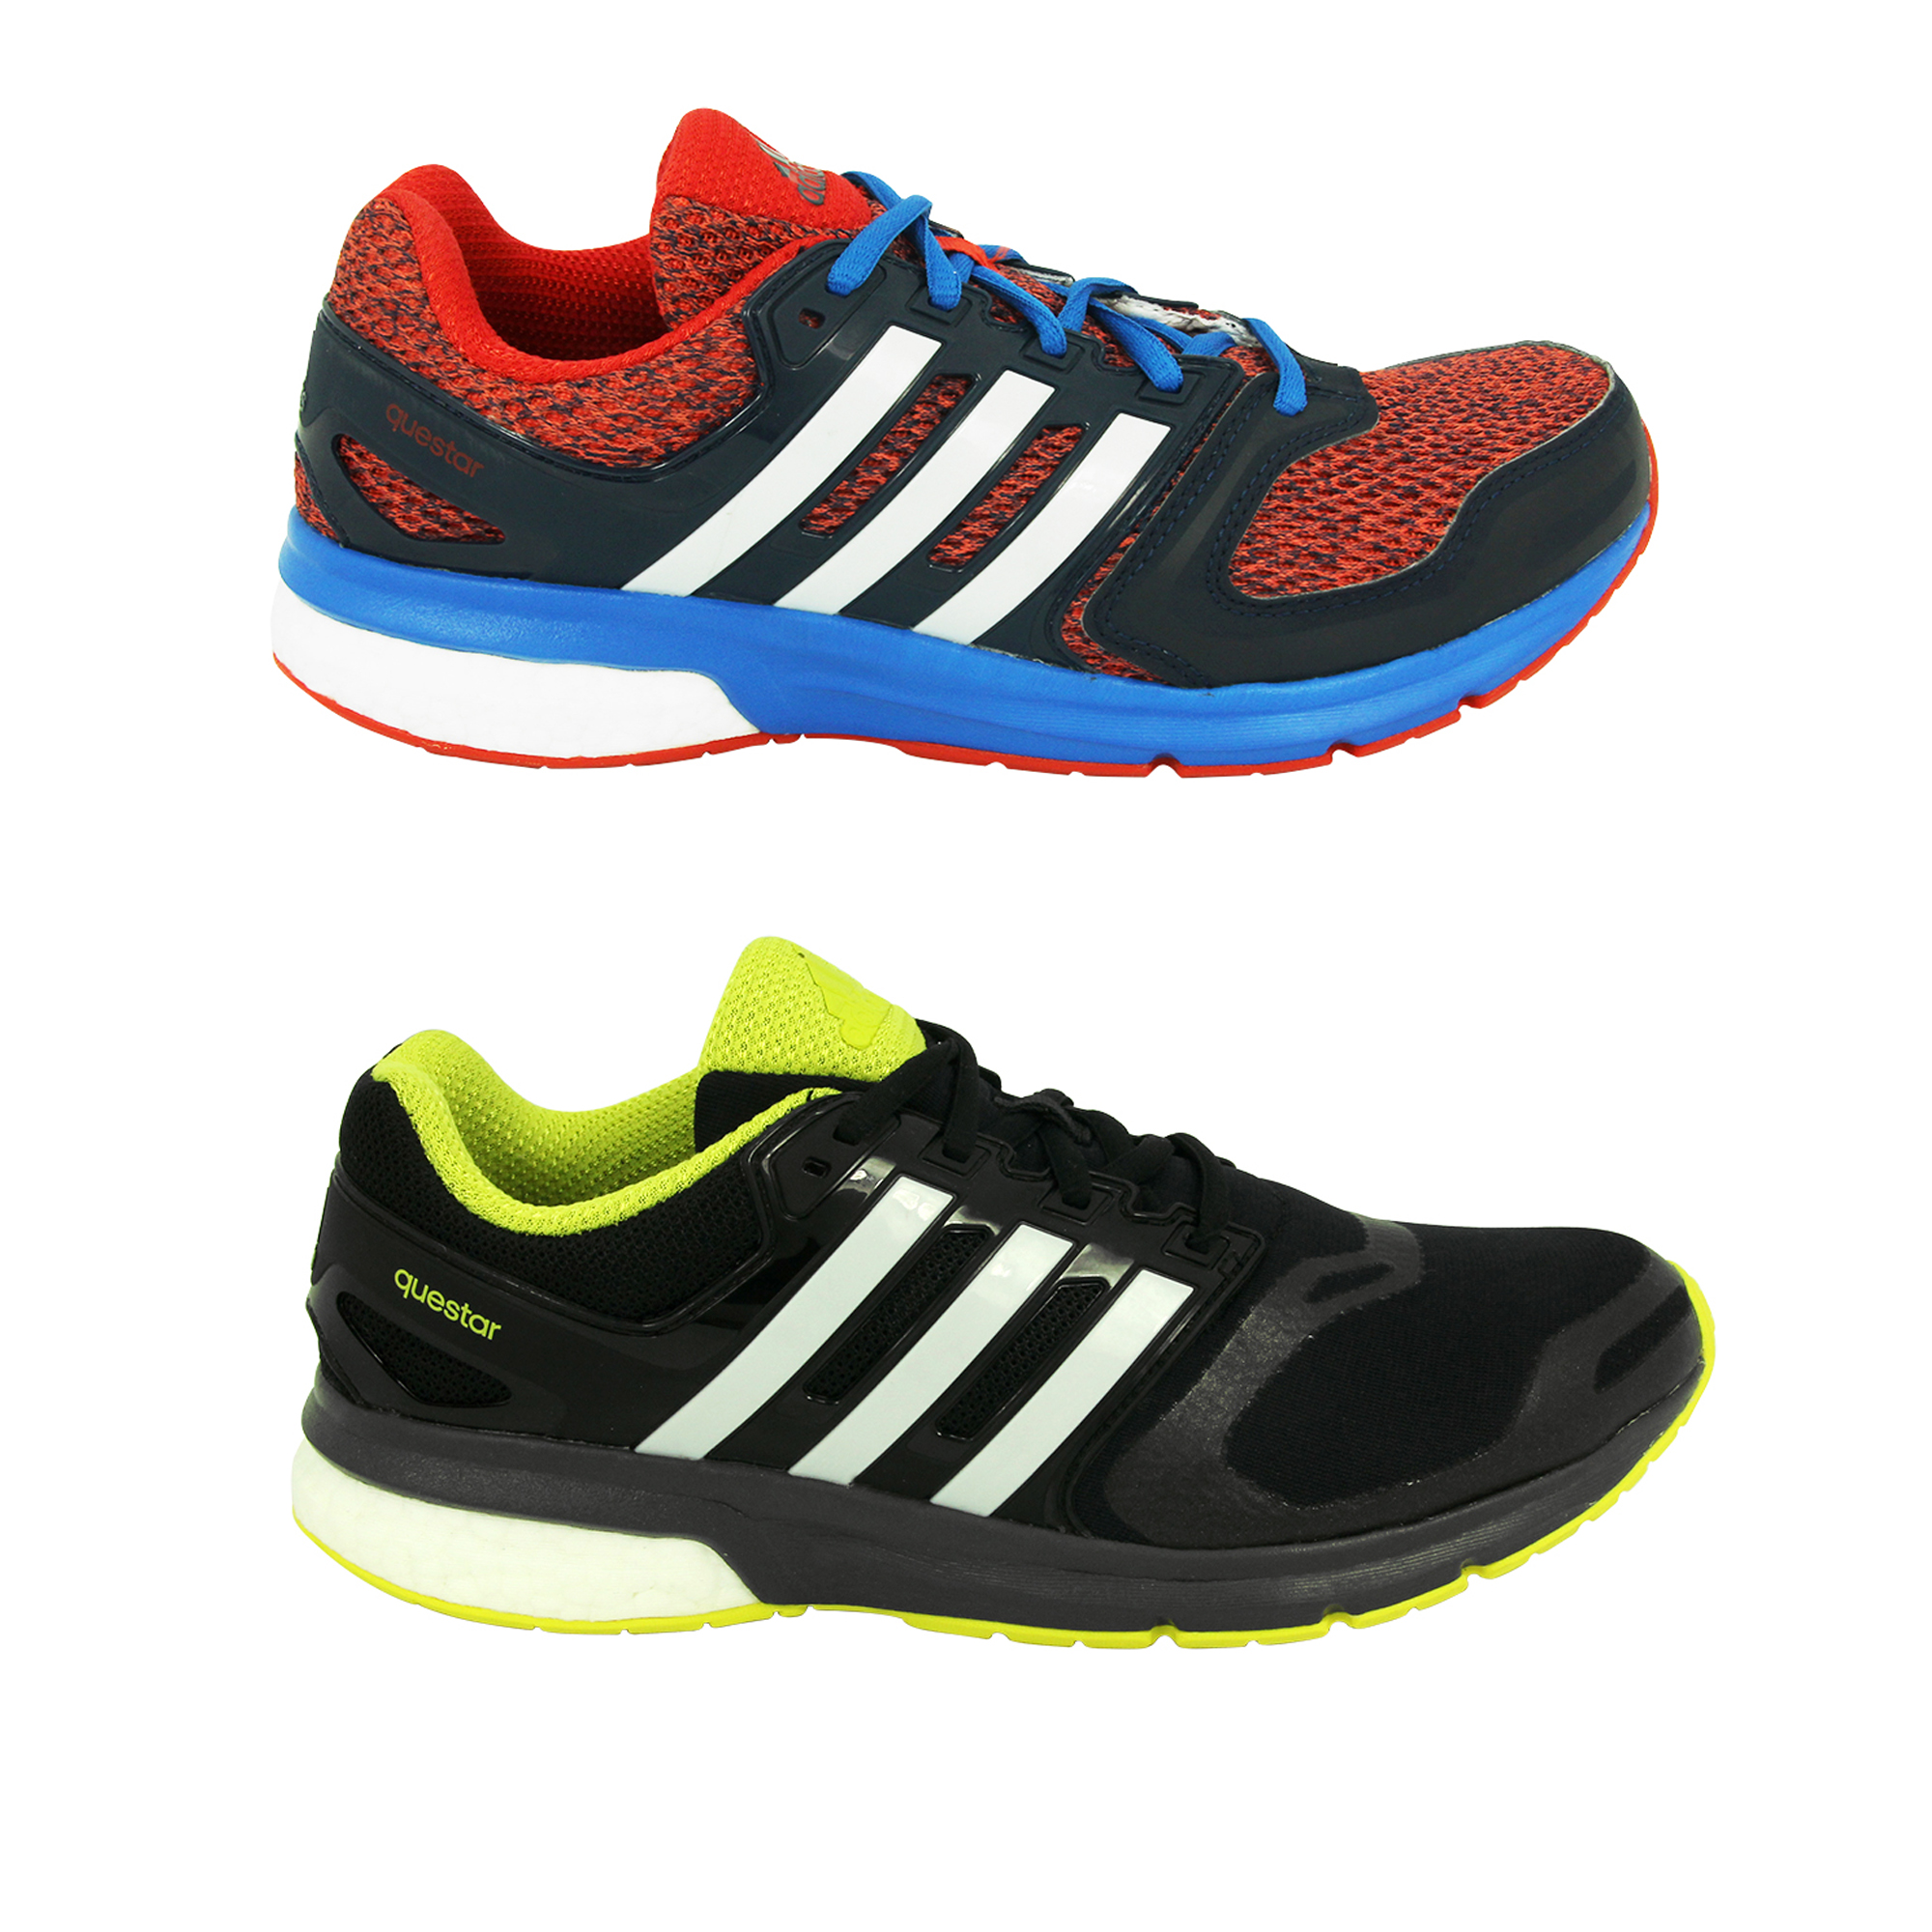 new style ad216 36d31 Adidas-Performance-QUESTAR-BOOST-Chaussures-Running-Homme-Torsion-